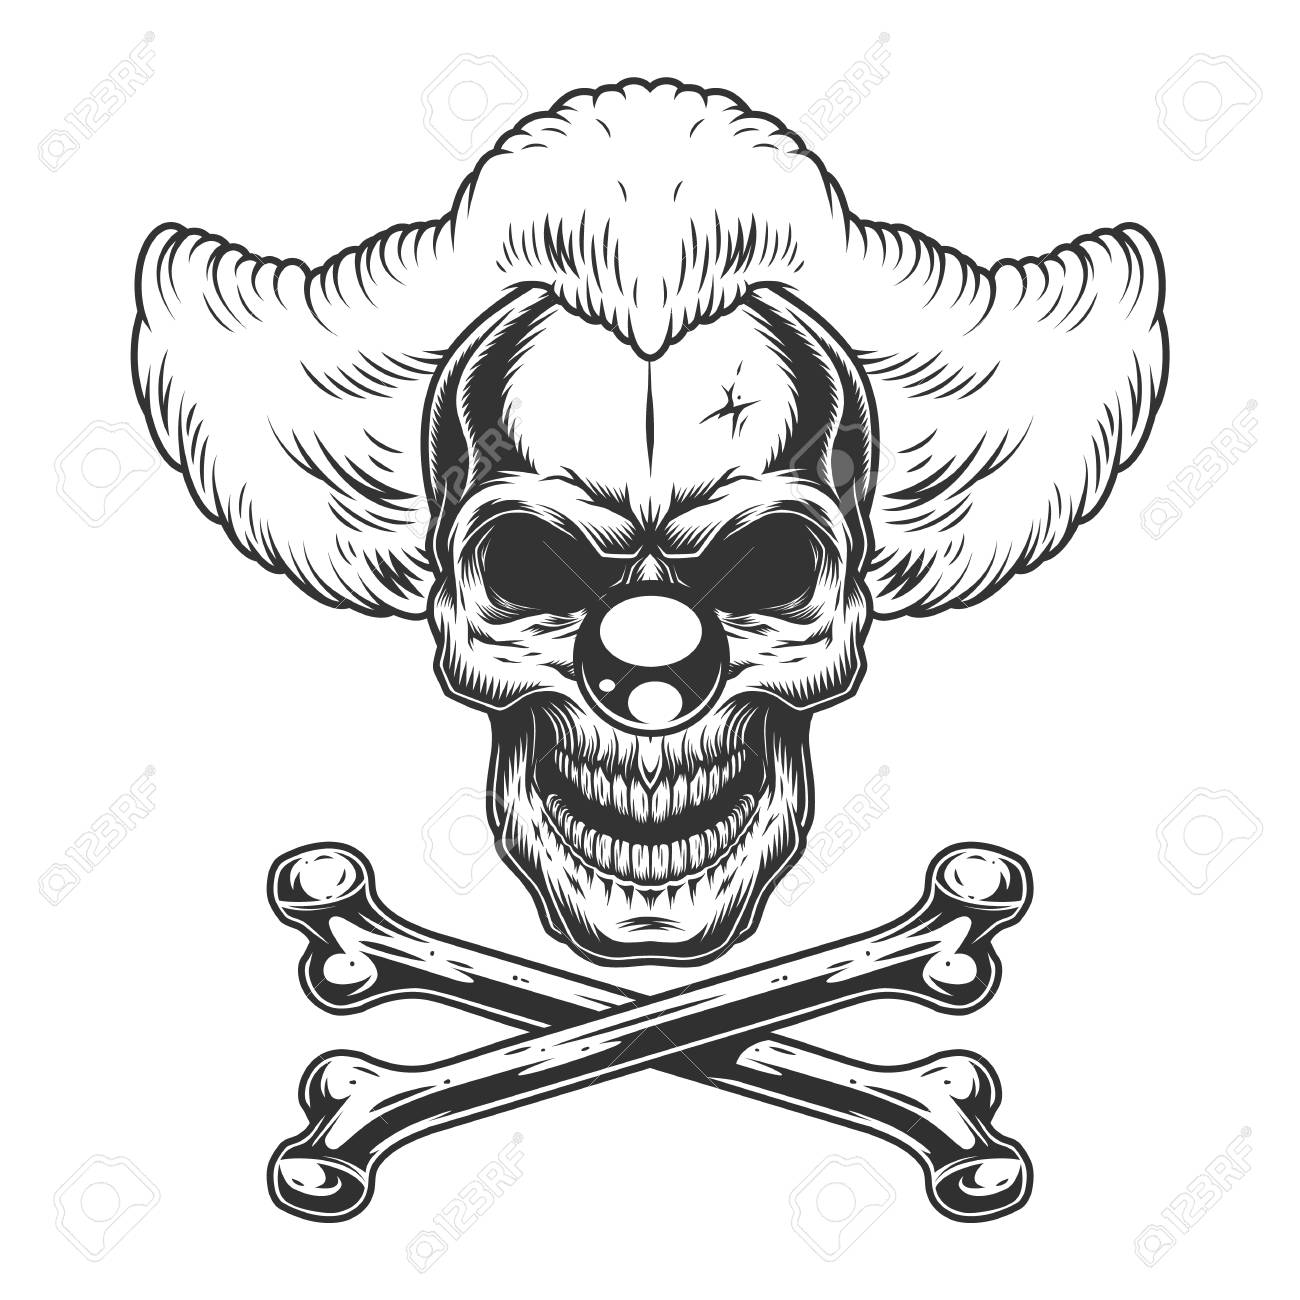 Vintage monochrome scary evil clown skull with crossbones isolated vector illustration - 116383491